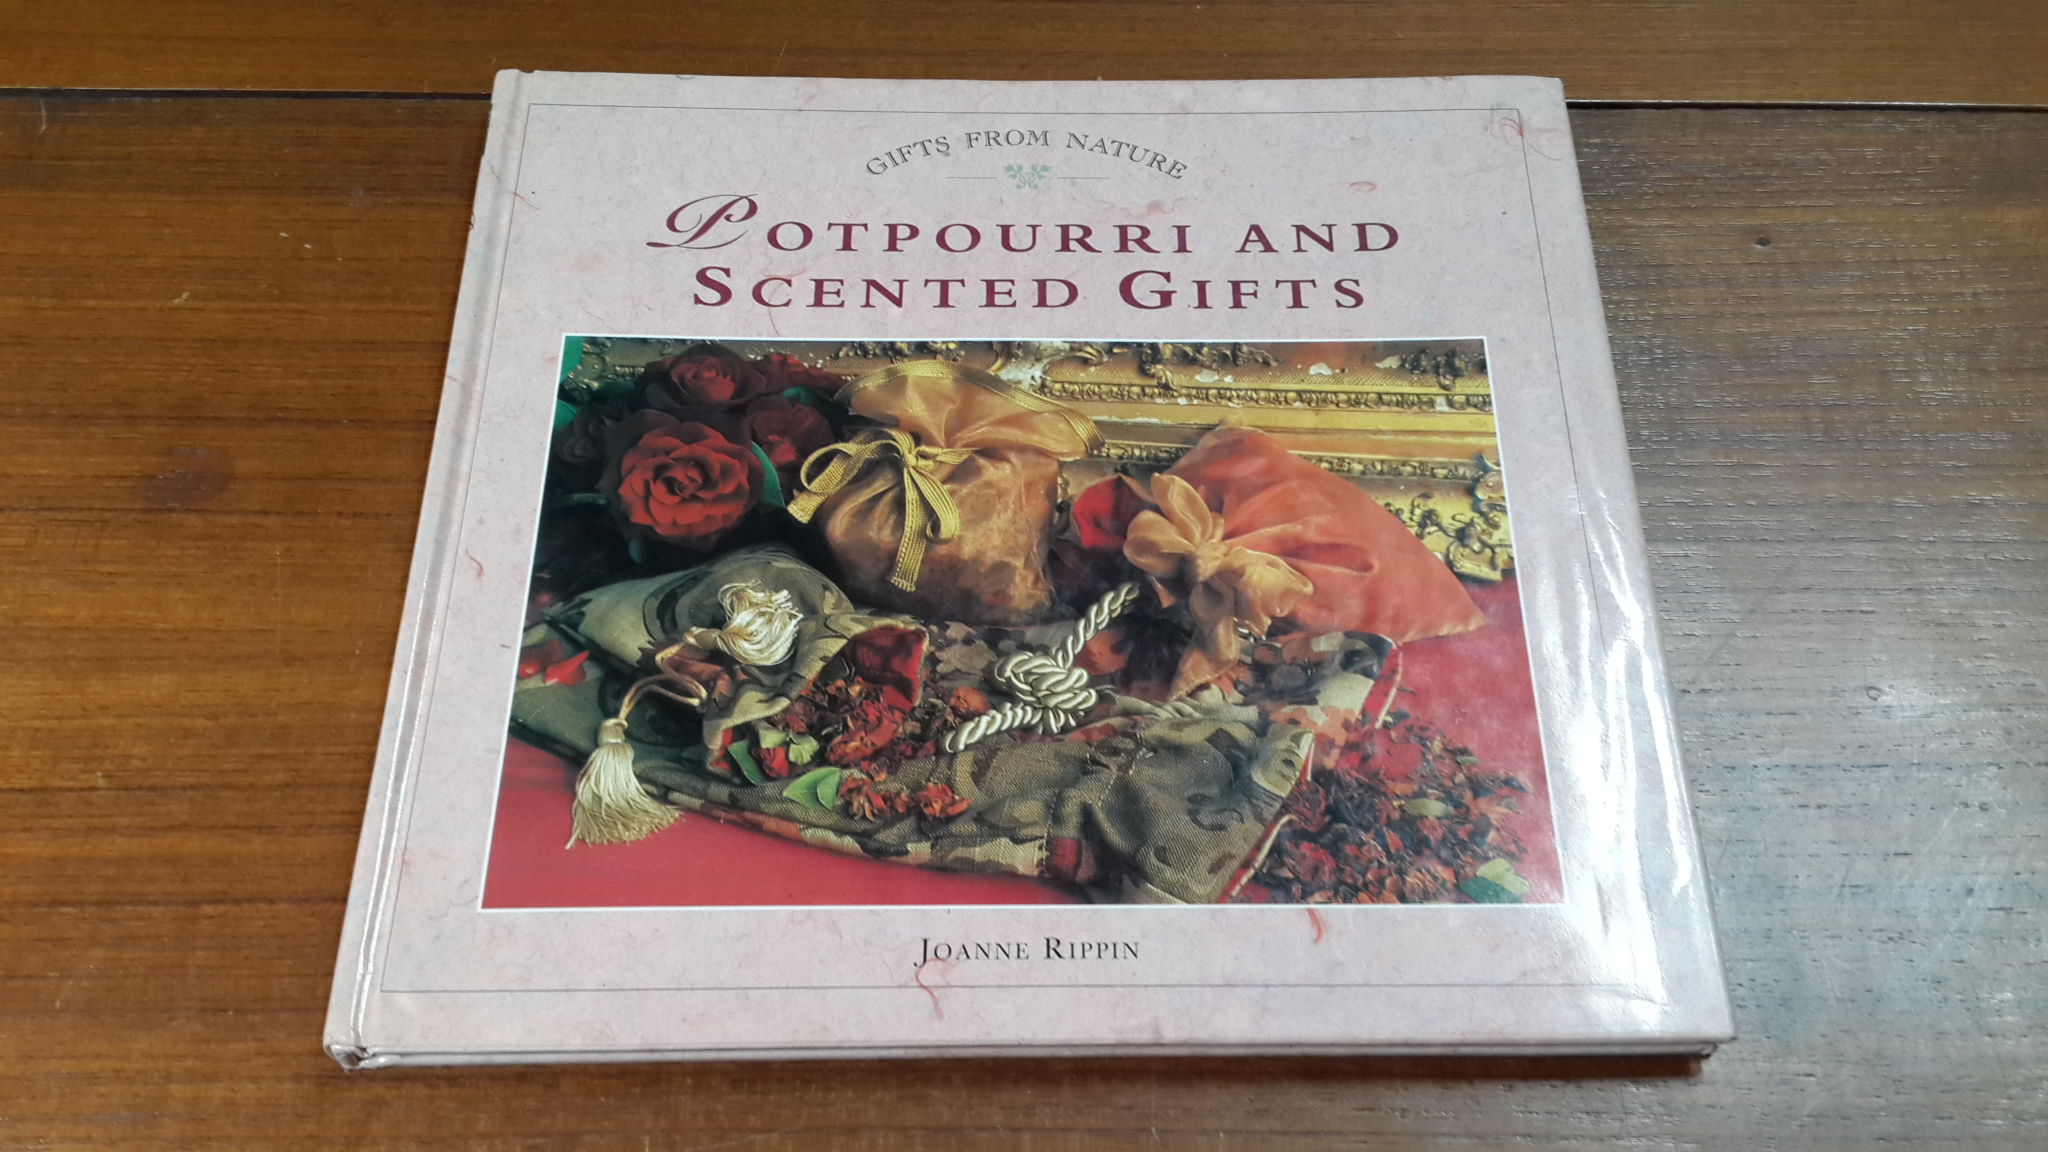 POTPOURRI AND SCENTED GIFTS / JOANNE RIPPIN